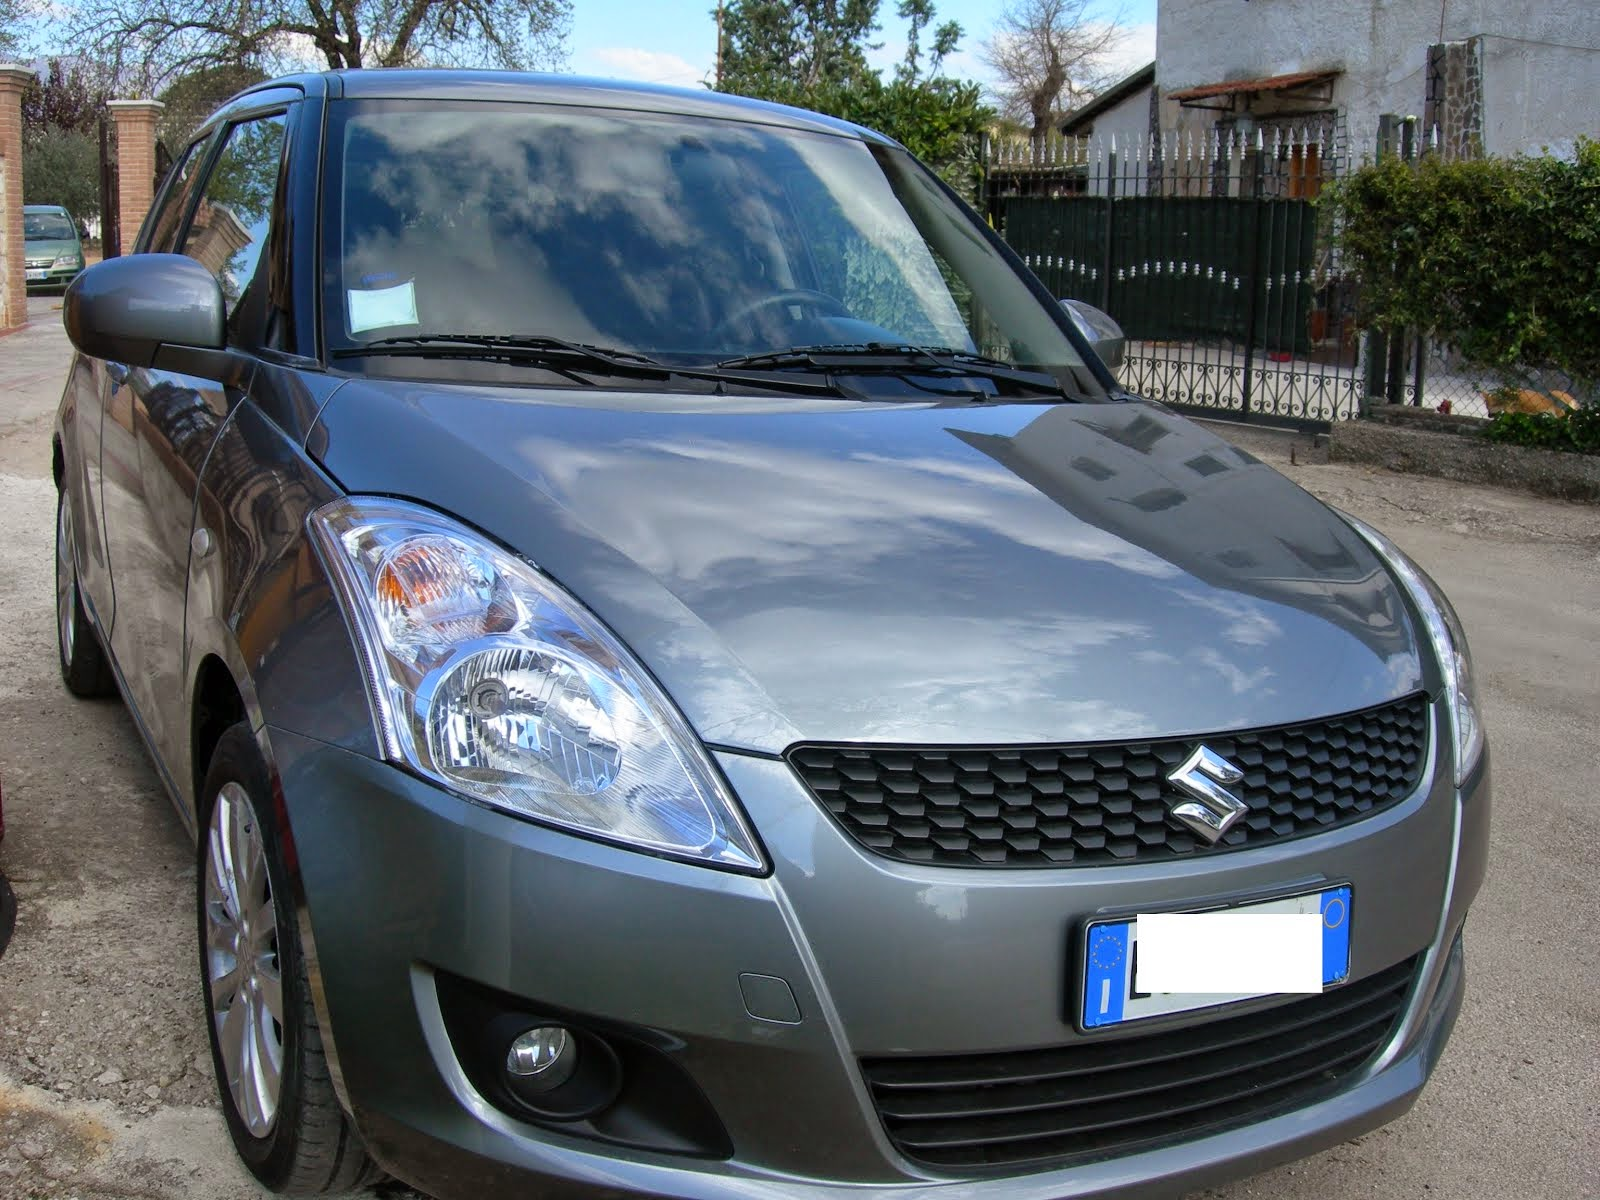 Suzuki Swift 1.2 GPL 95 CV Acc.Full optional 52.000km Anno 2011